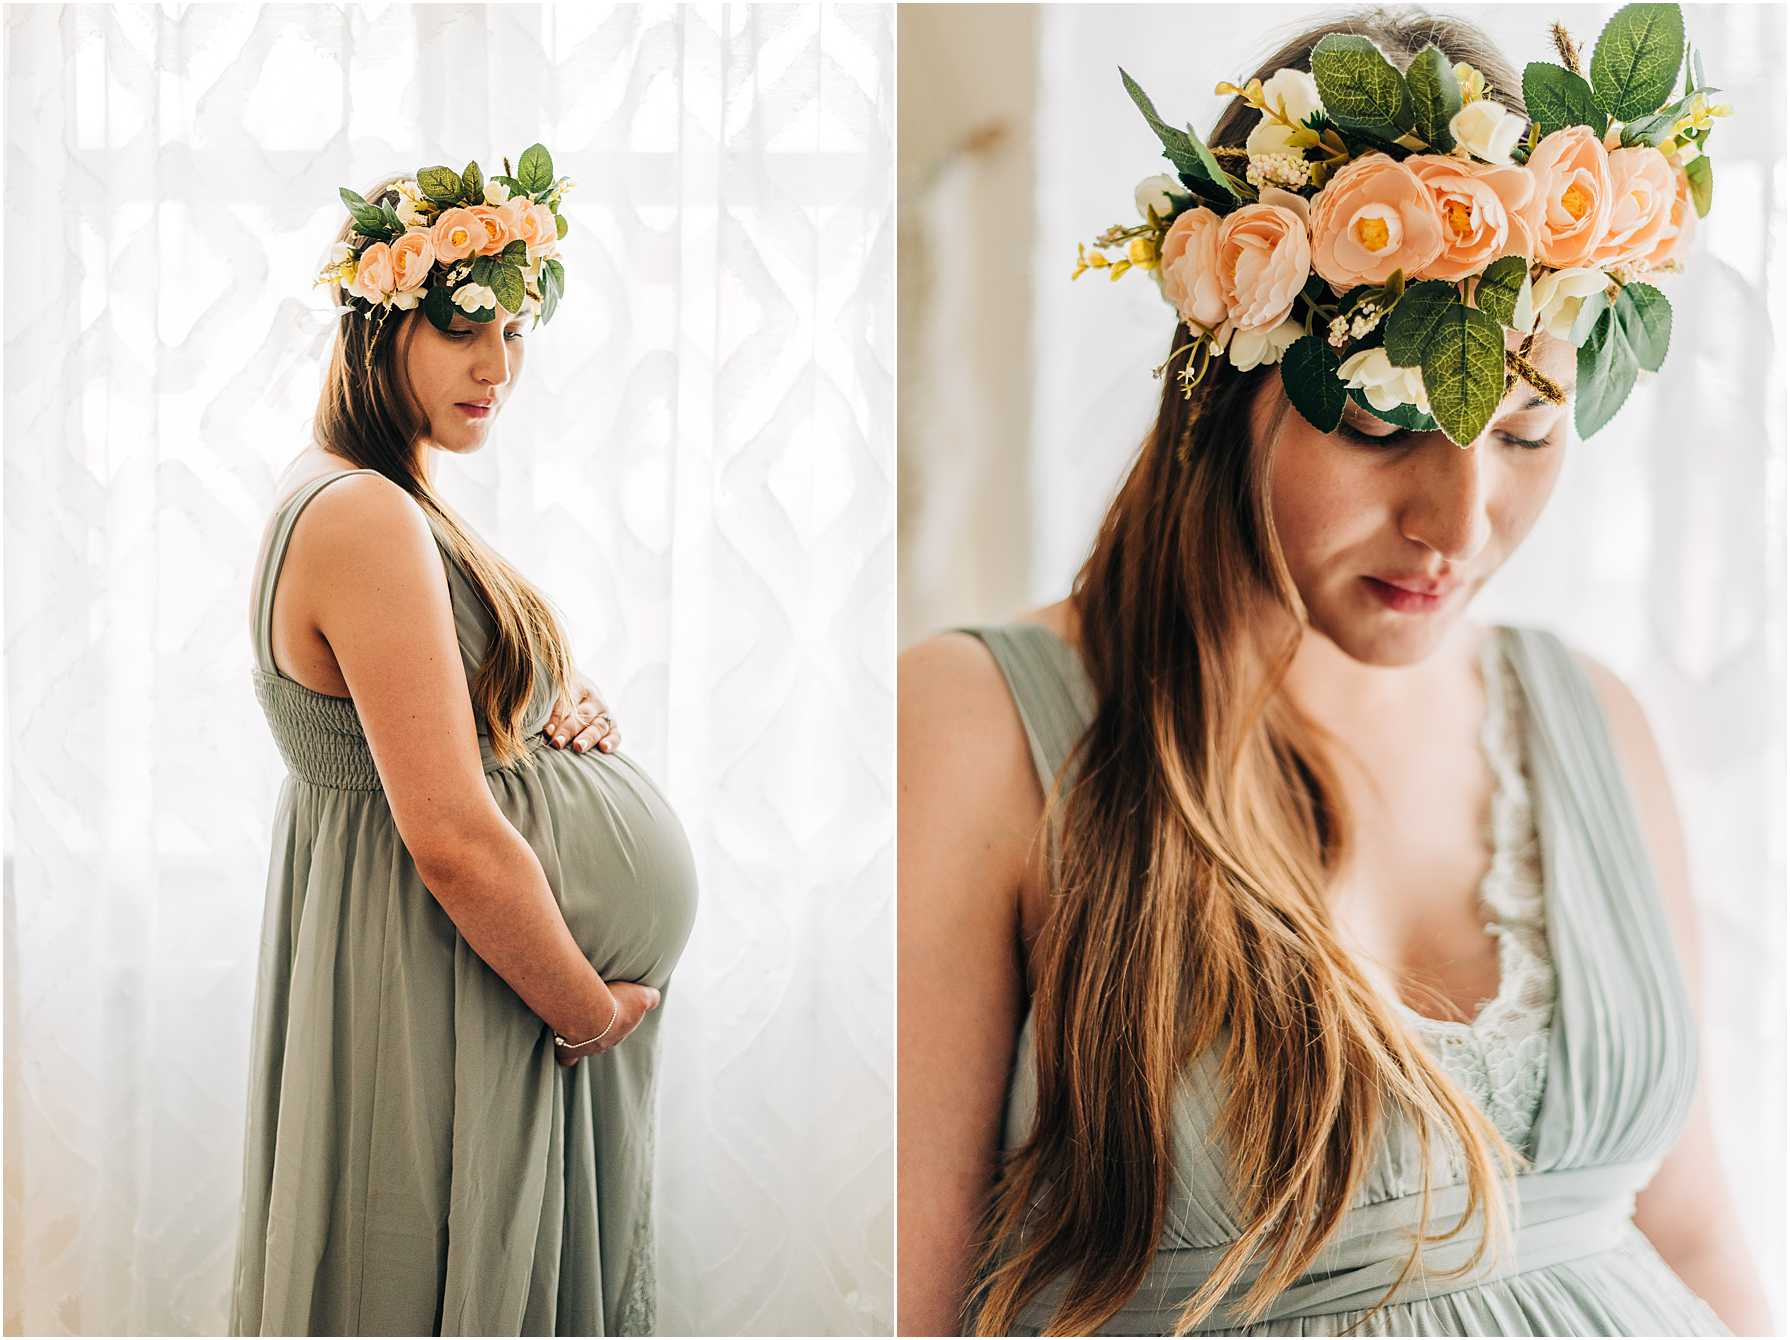 pregnant woman wearing a flower crown standing next to a window